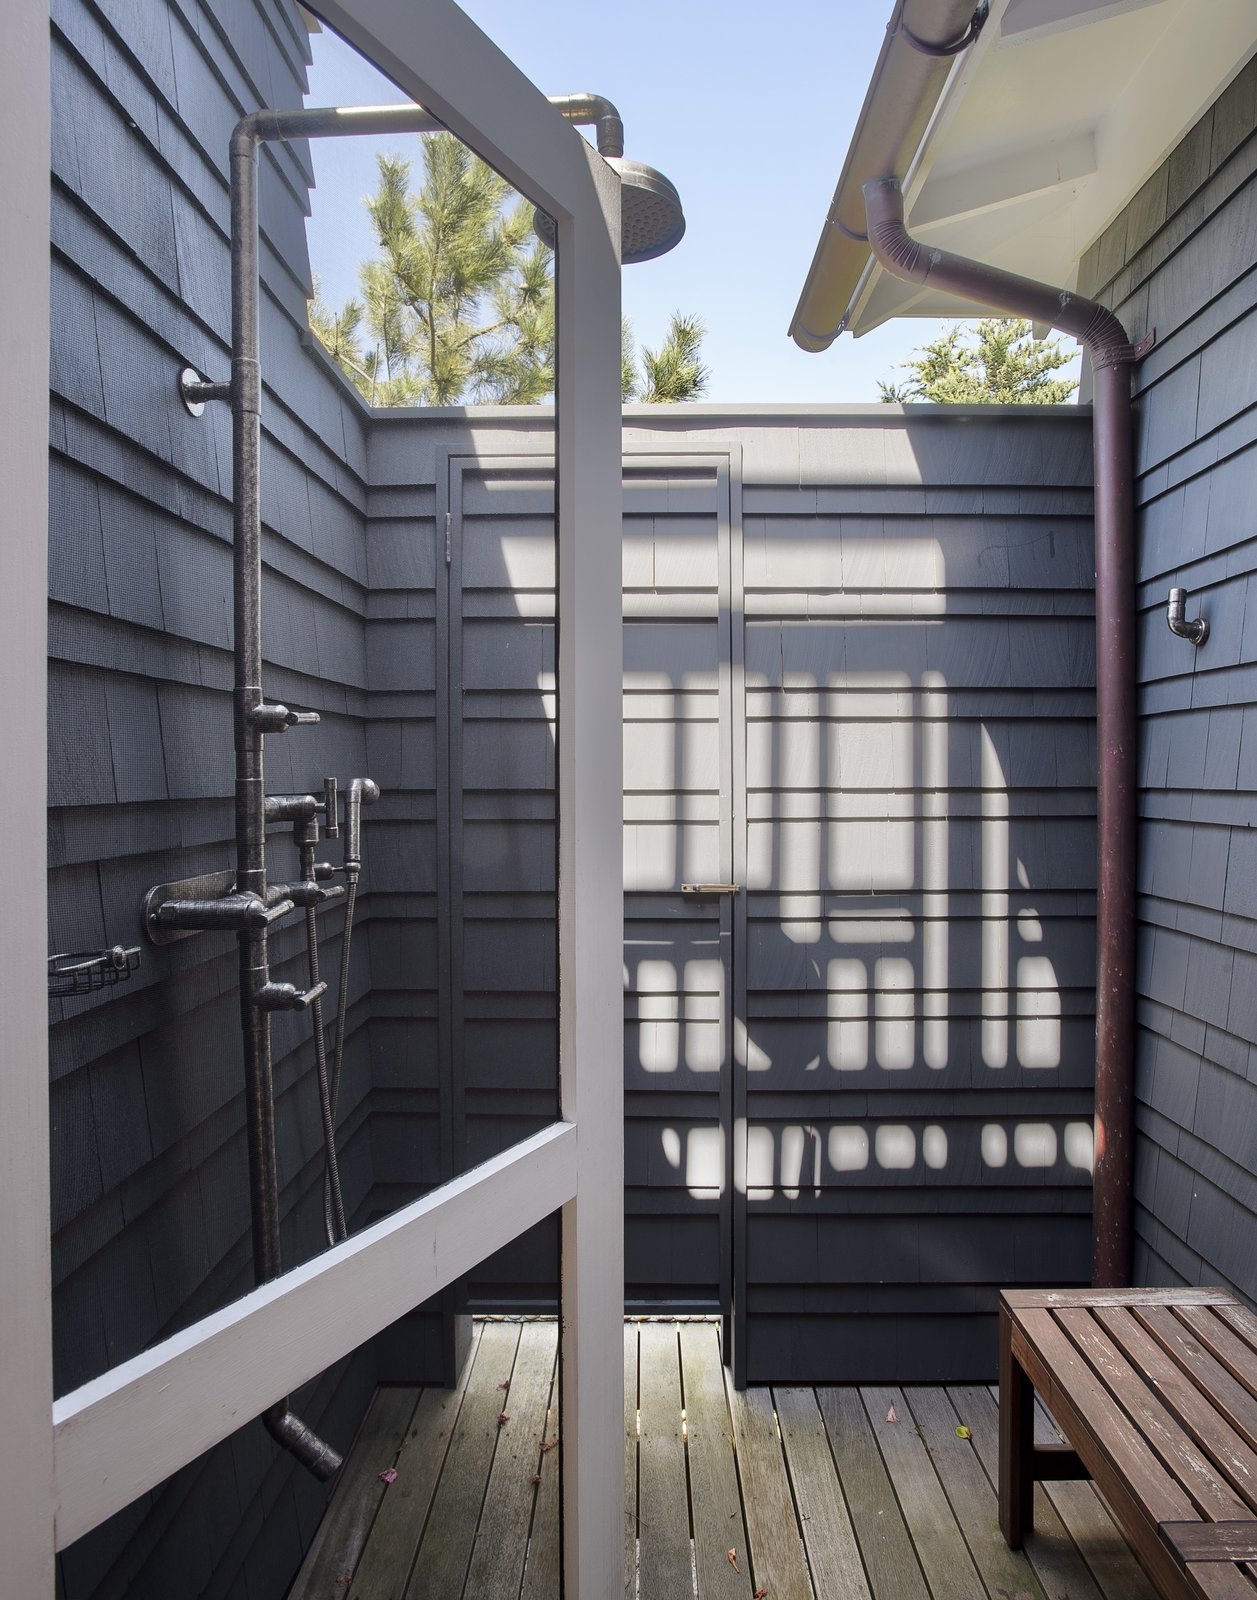 Outdoor, Shower Pools, Tubs, Shower, Wood Patio, Porch, Deck, Small Patio, Porch, Deck, and Decking Patio, Porch, Deck  Best Photos from This Eclectic Beach Bungalow on Fire Island Was Saved After Sandy